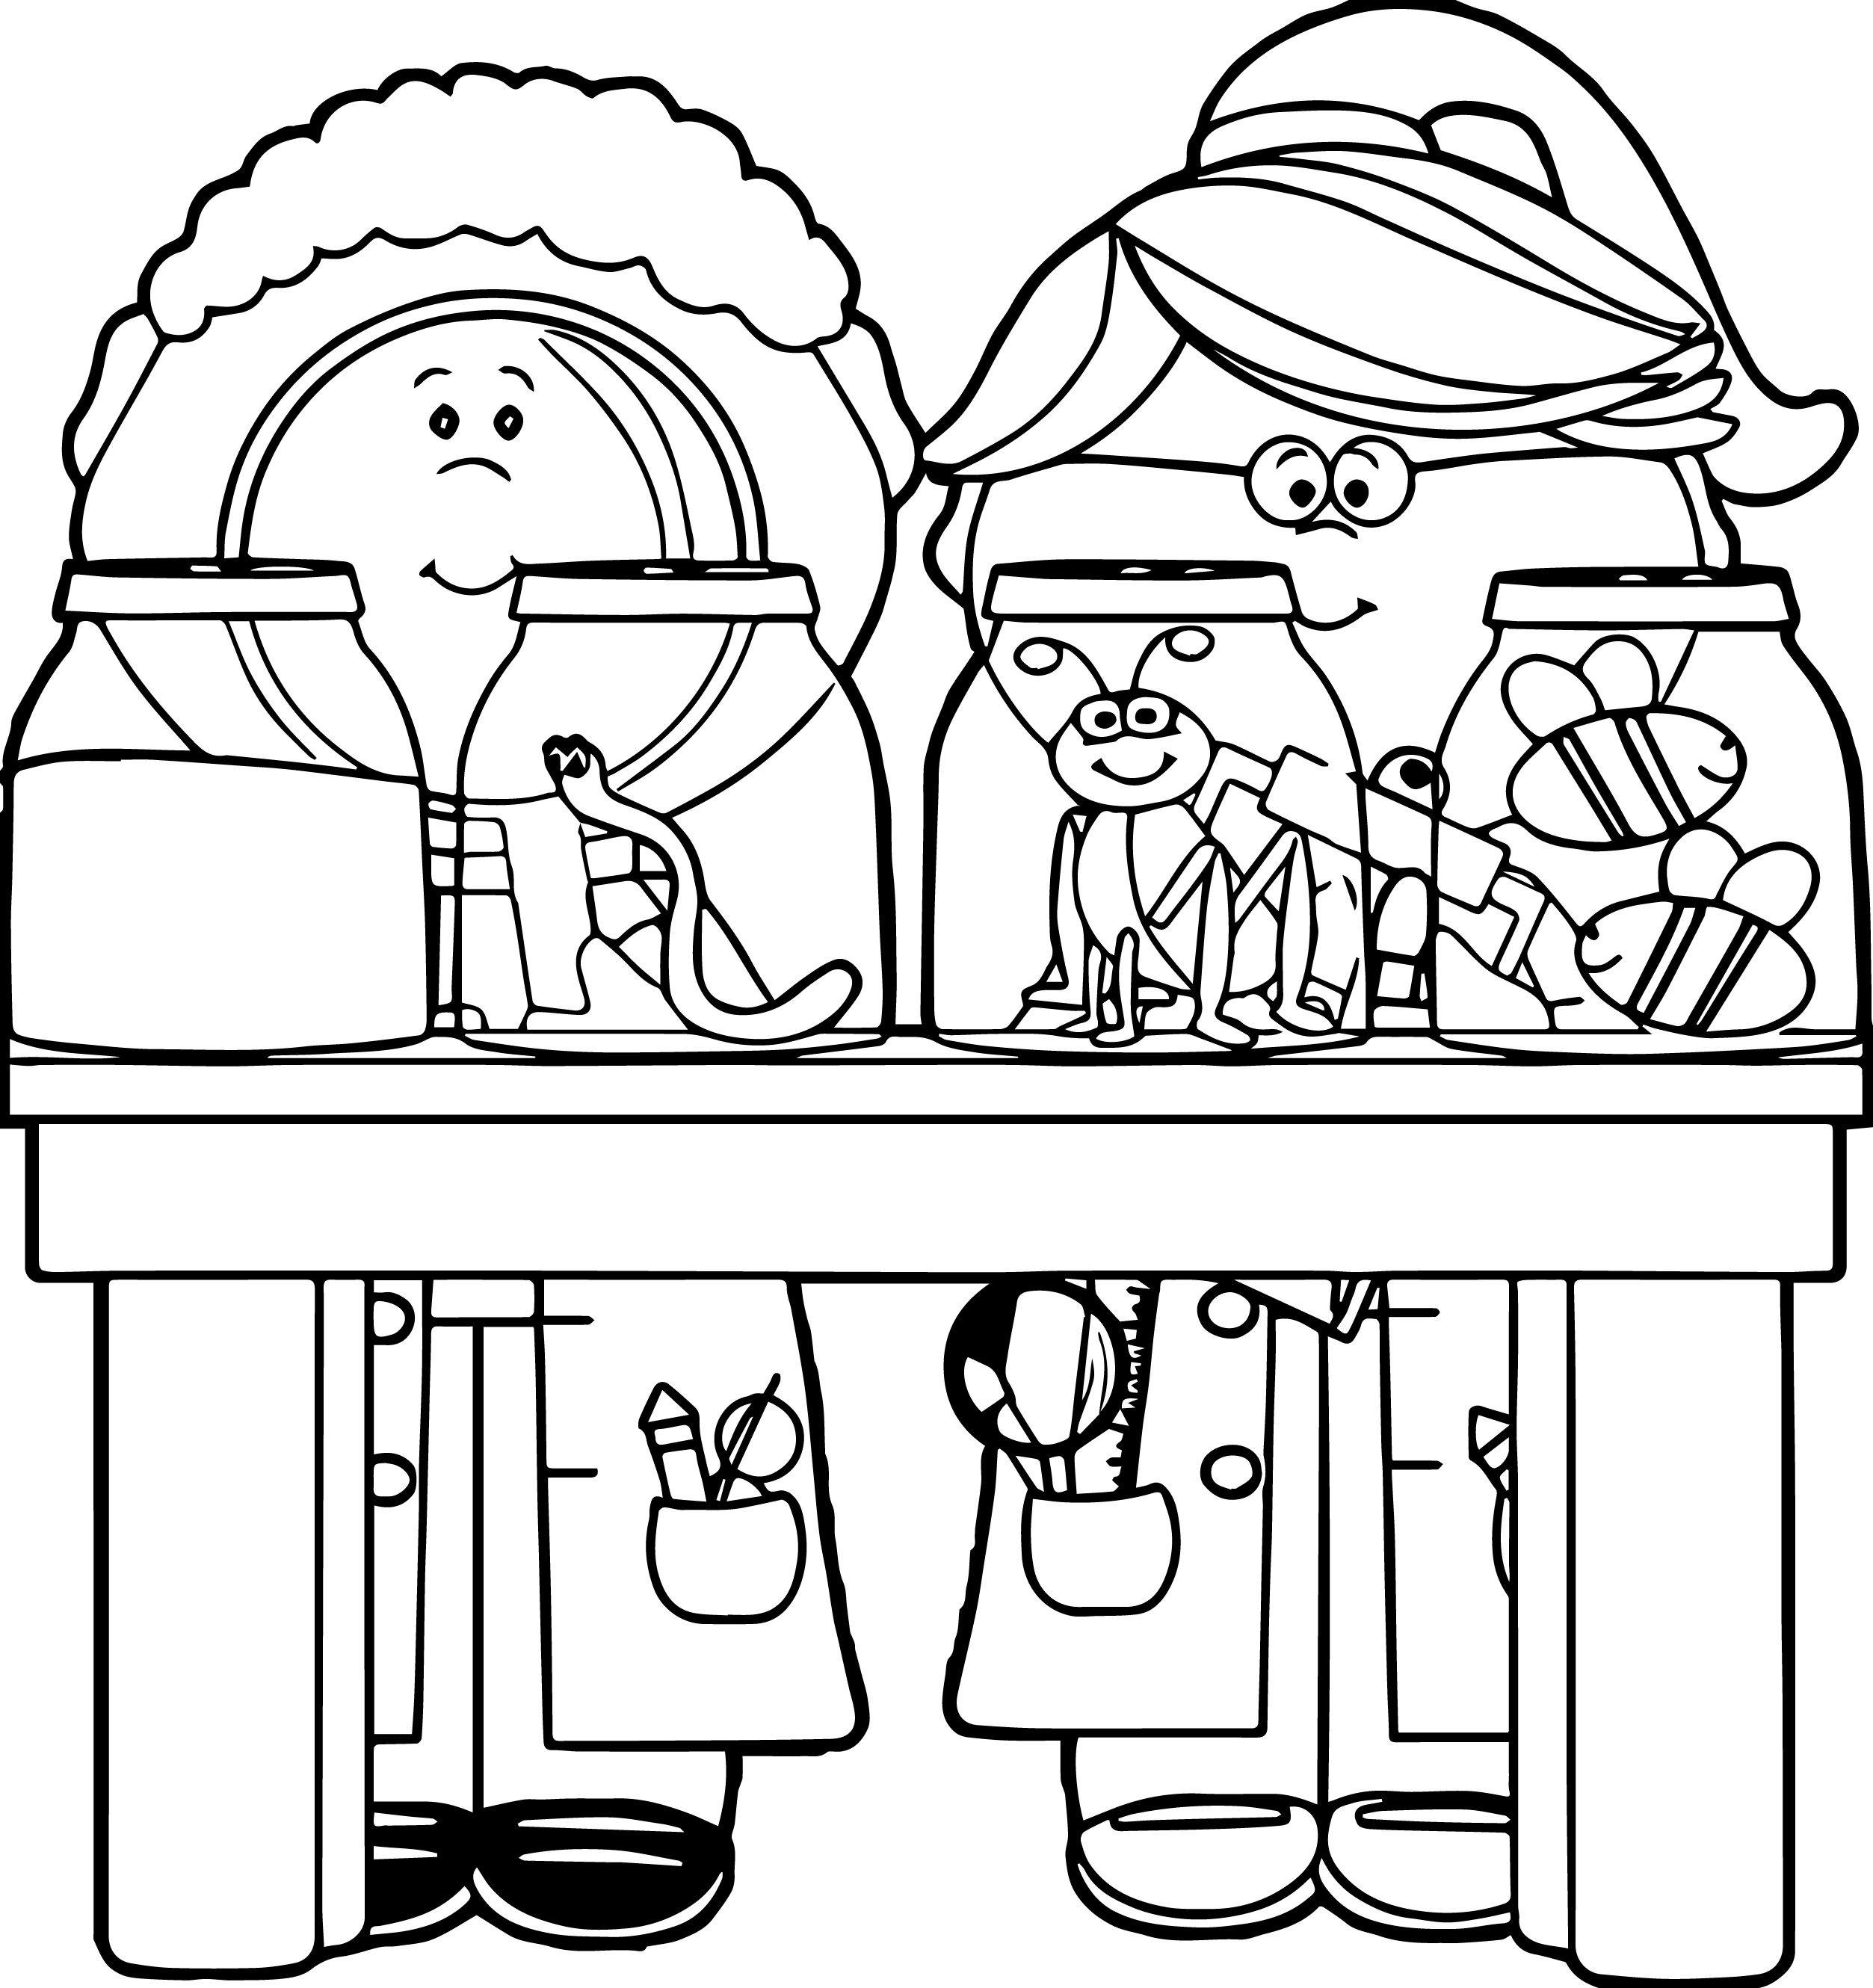 science clipart for kids black and white - Clipground